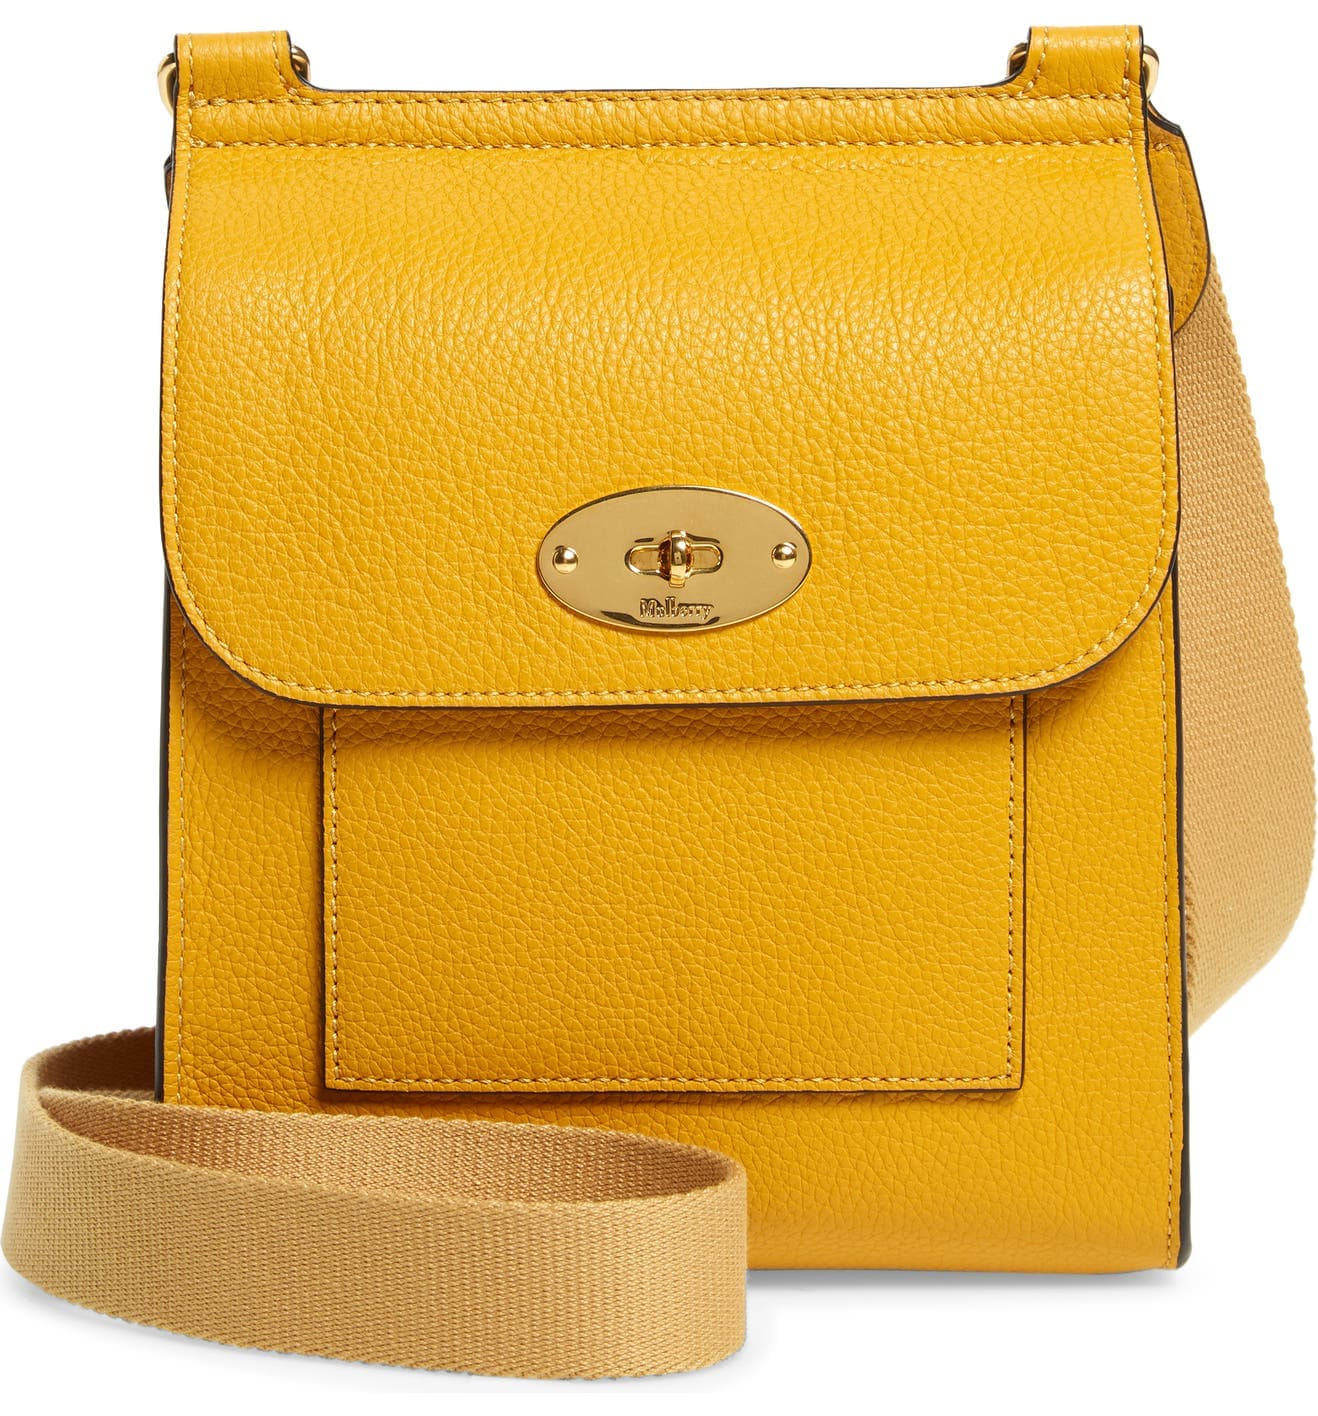 Mulberry's Antony bag is a sleek crossbody bag that has the brand's signature turnlock closure on the flap